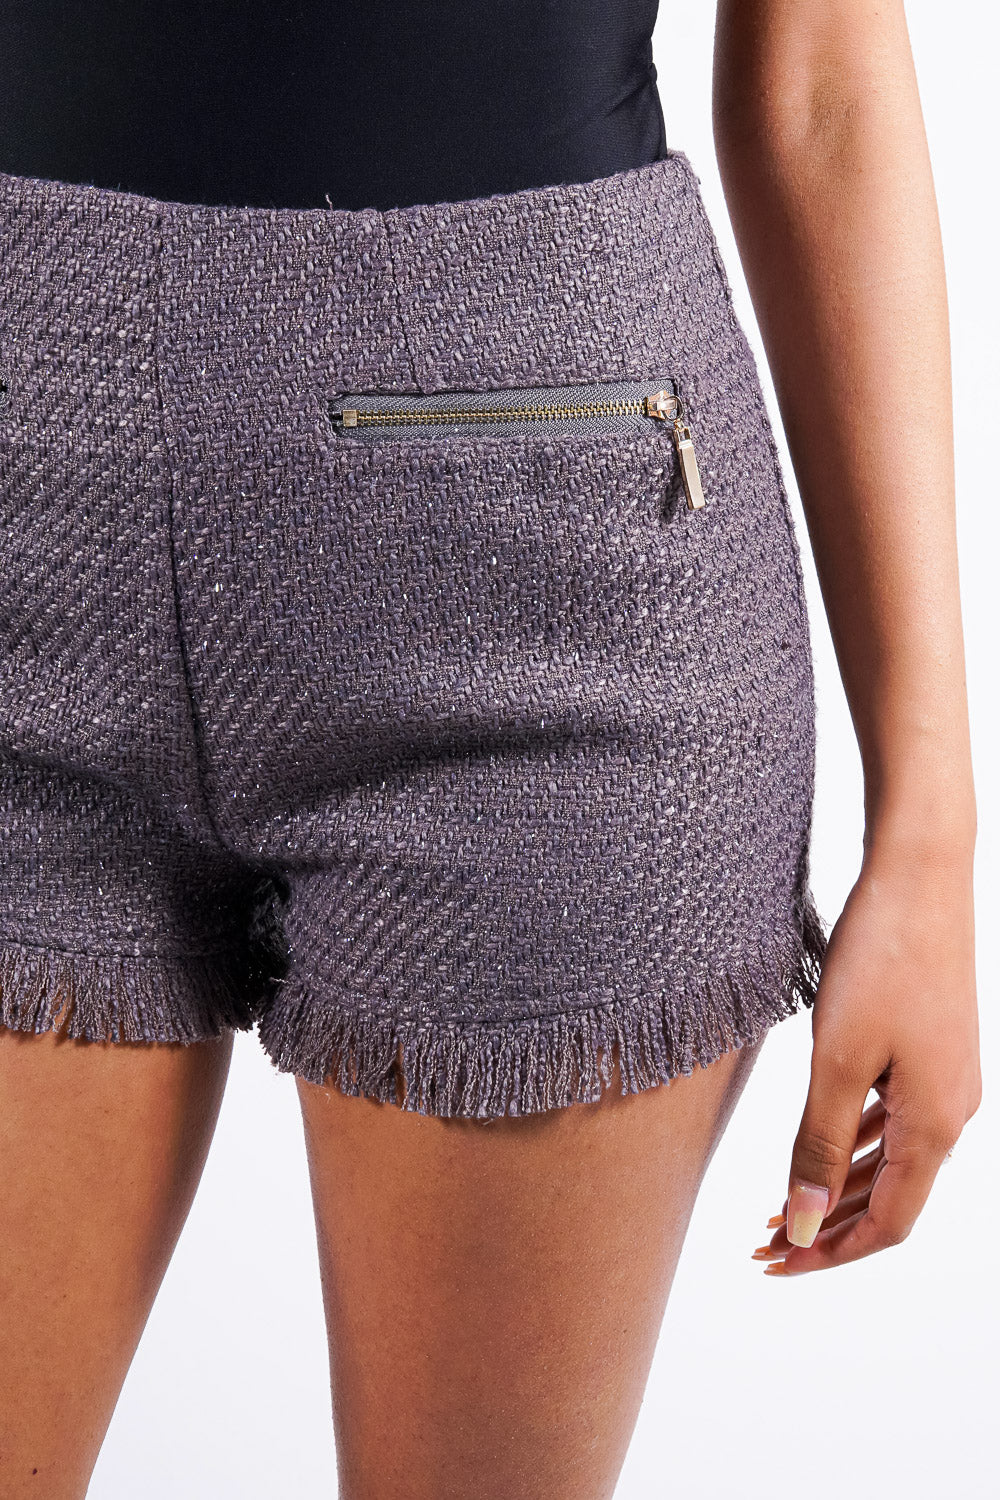 Morgan's shorts, grey